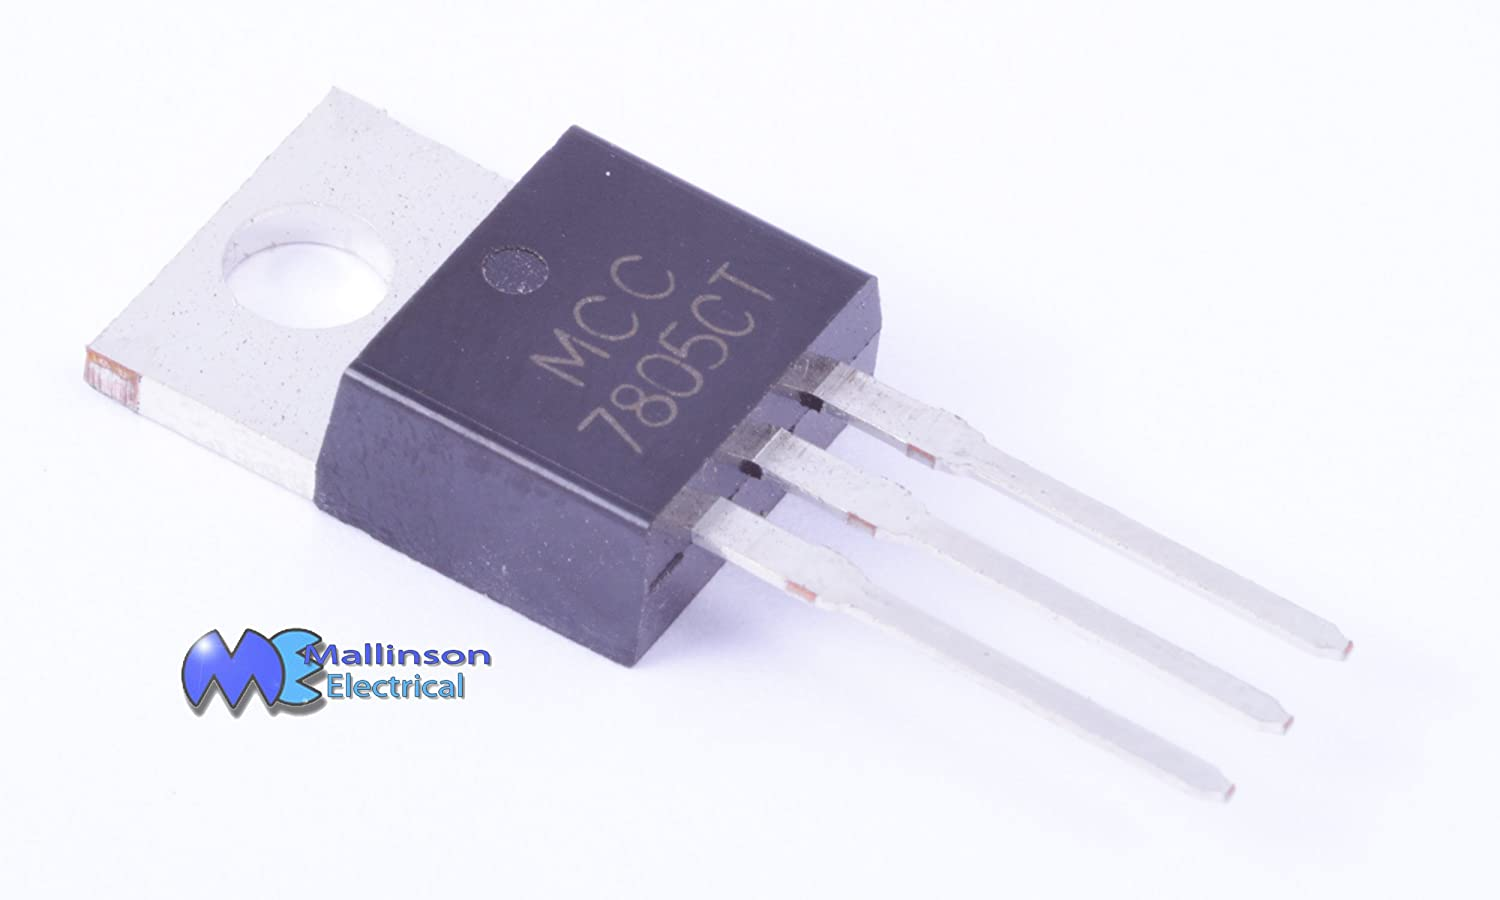 Lm7805 7805 Positive Voltage Regulator 5v 1a To 220ab 12v 6v Converter Circuit With Computers Accessories